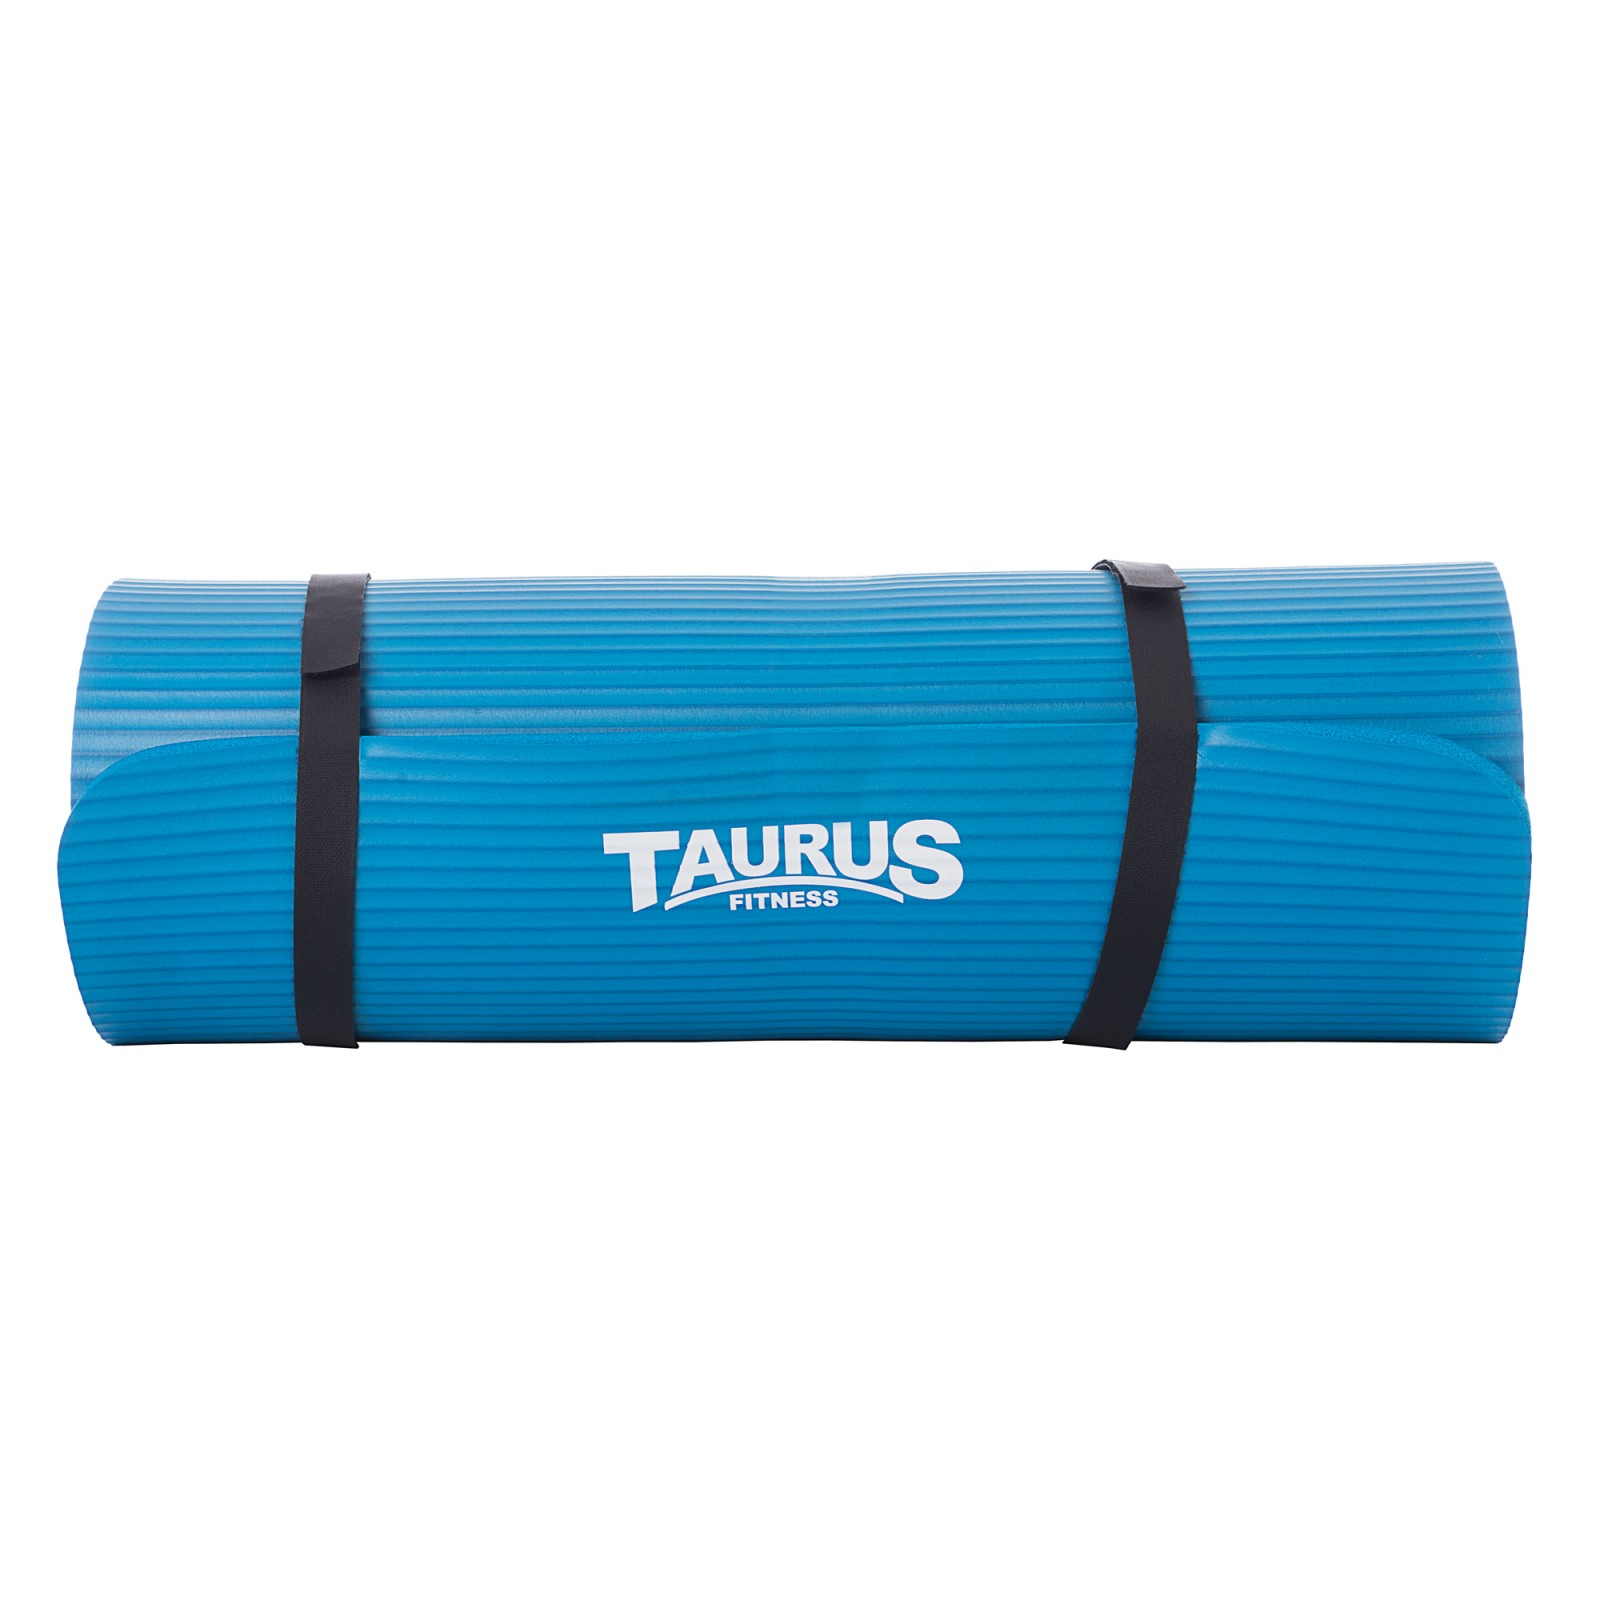 Gymnastikmatte Kaufen Taurus Trainingsmatte 20mm